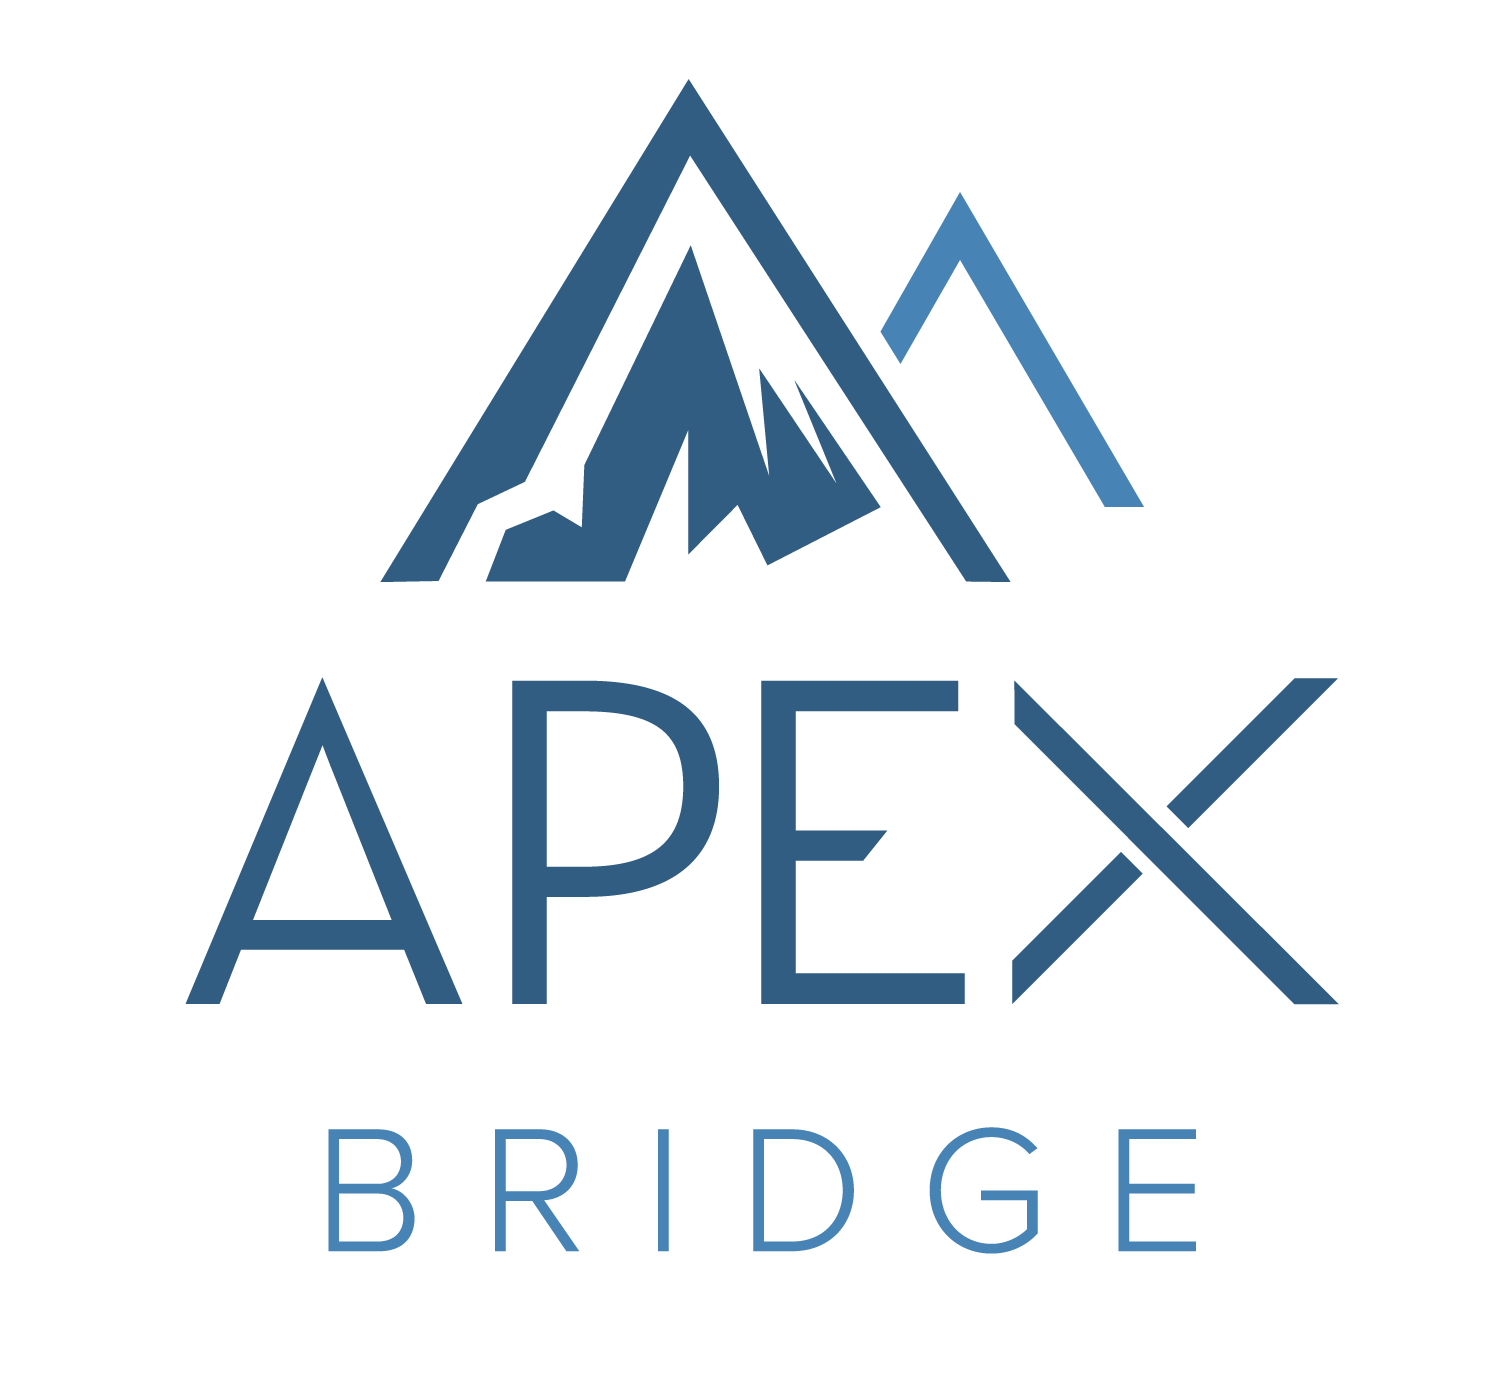 APEX Bridge